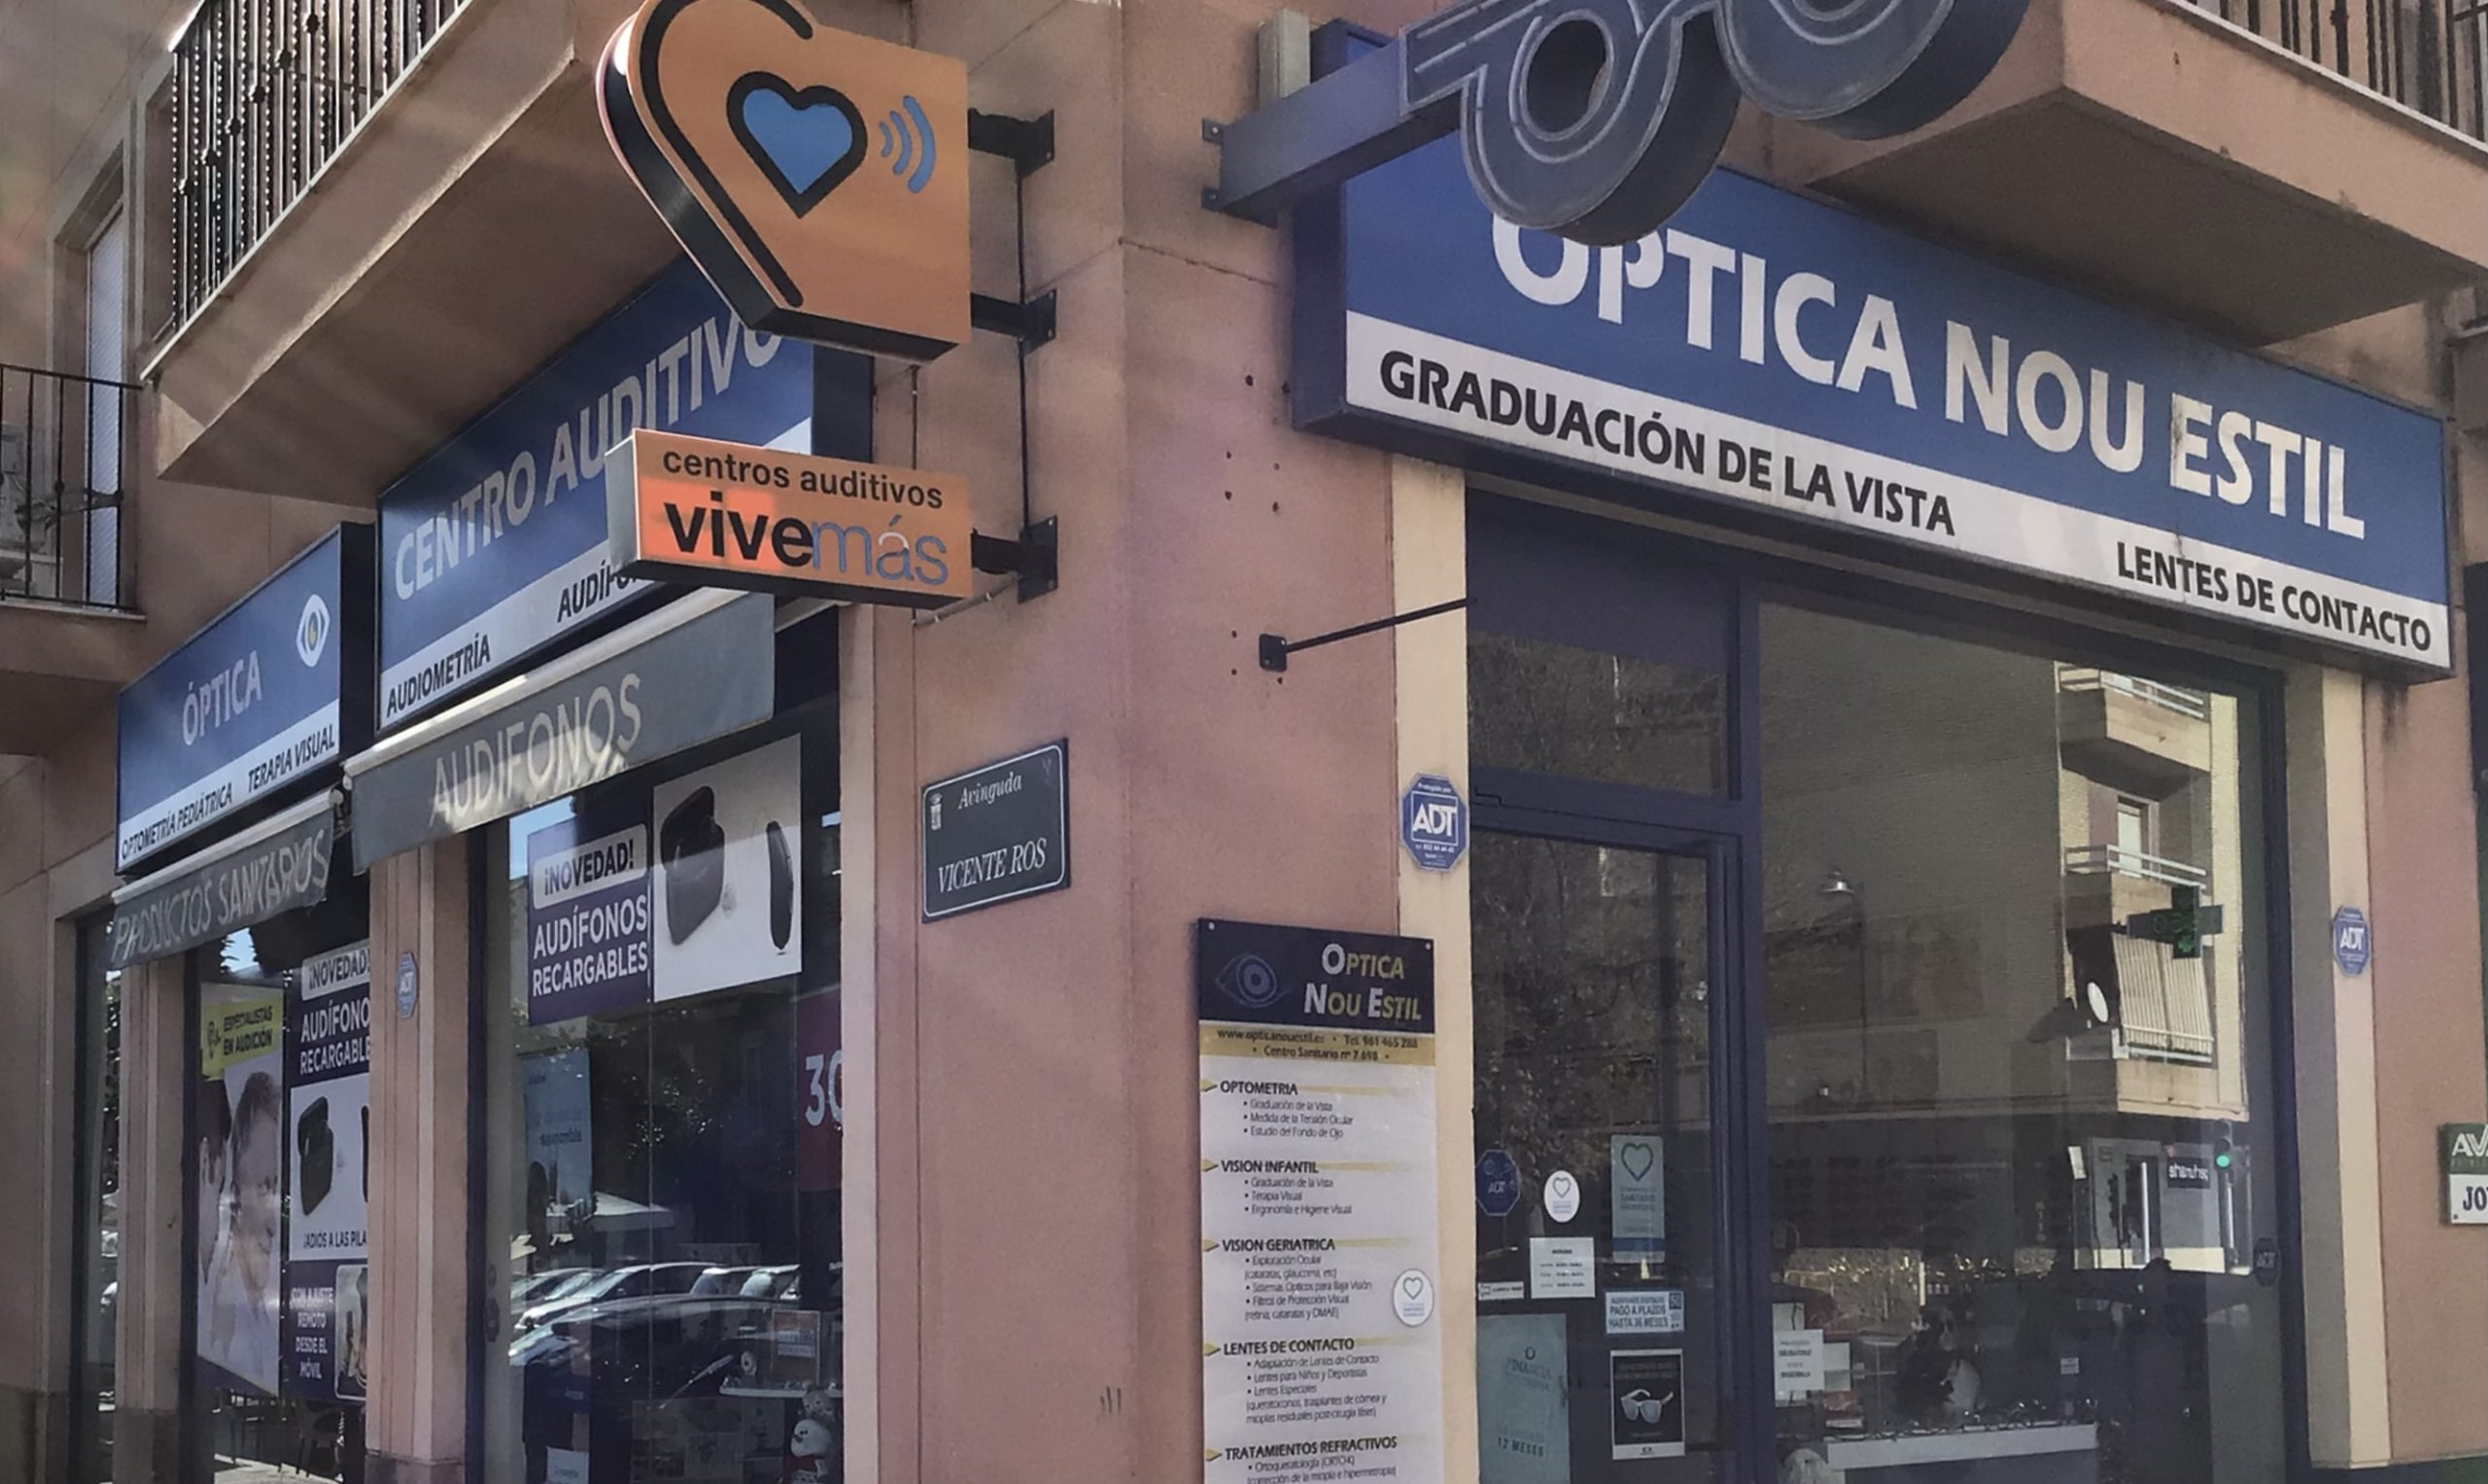 Optica Nou Estil